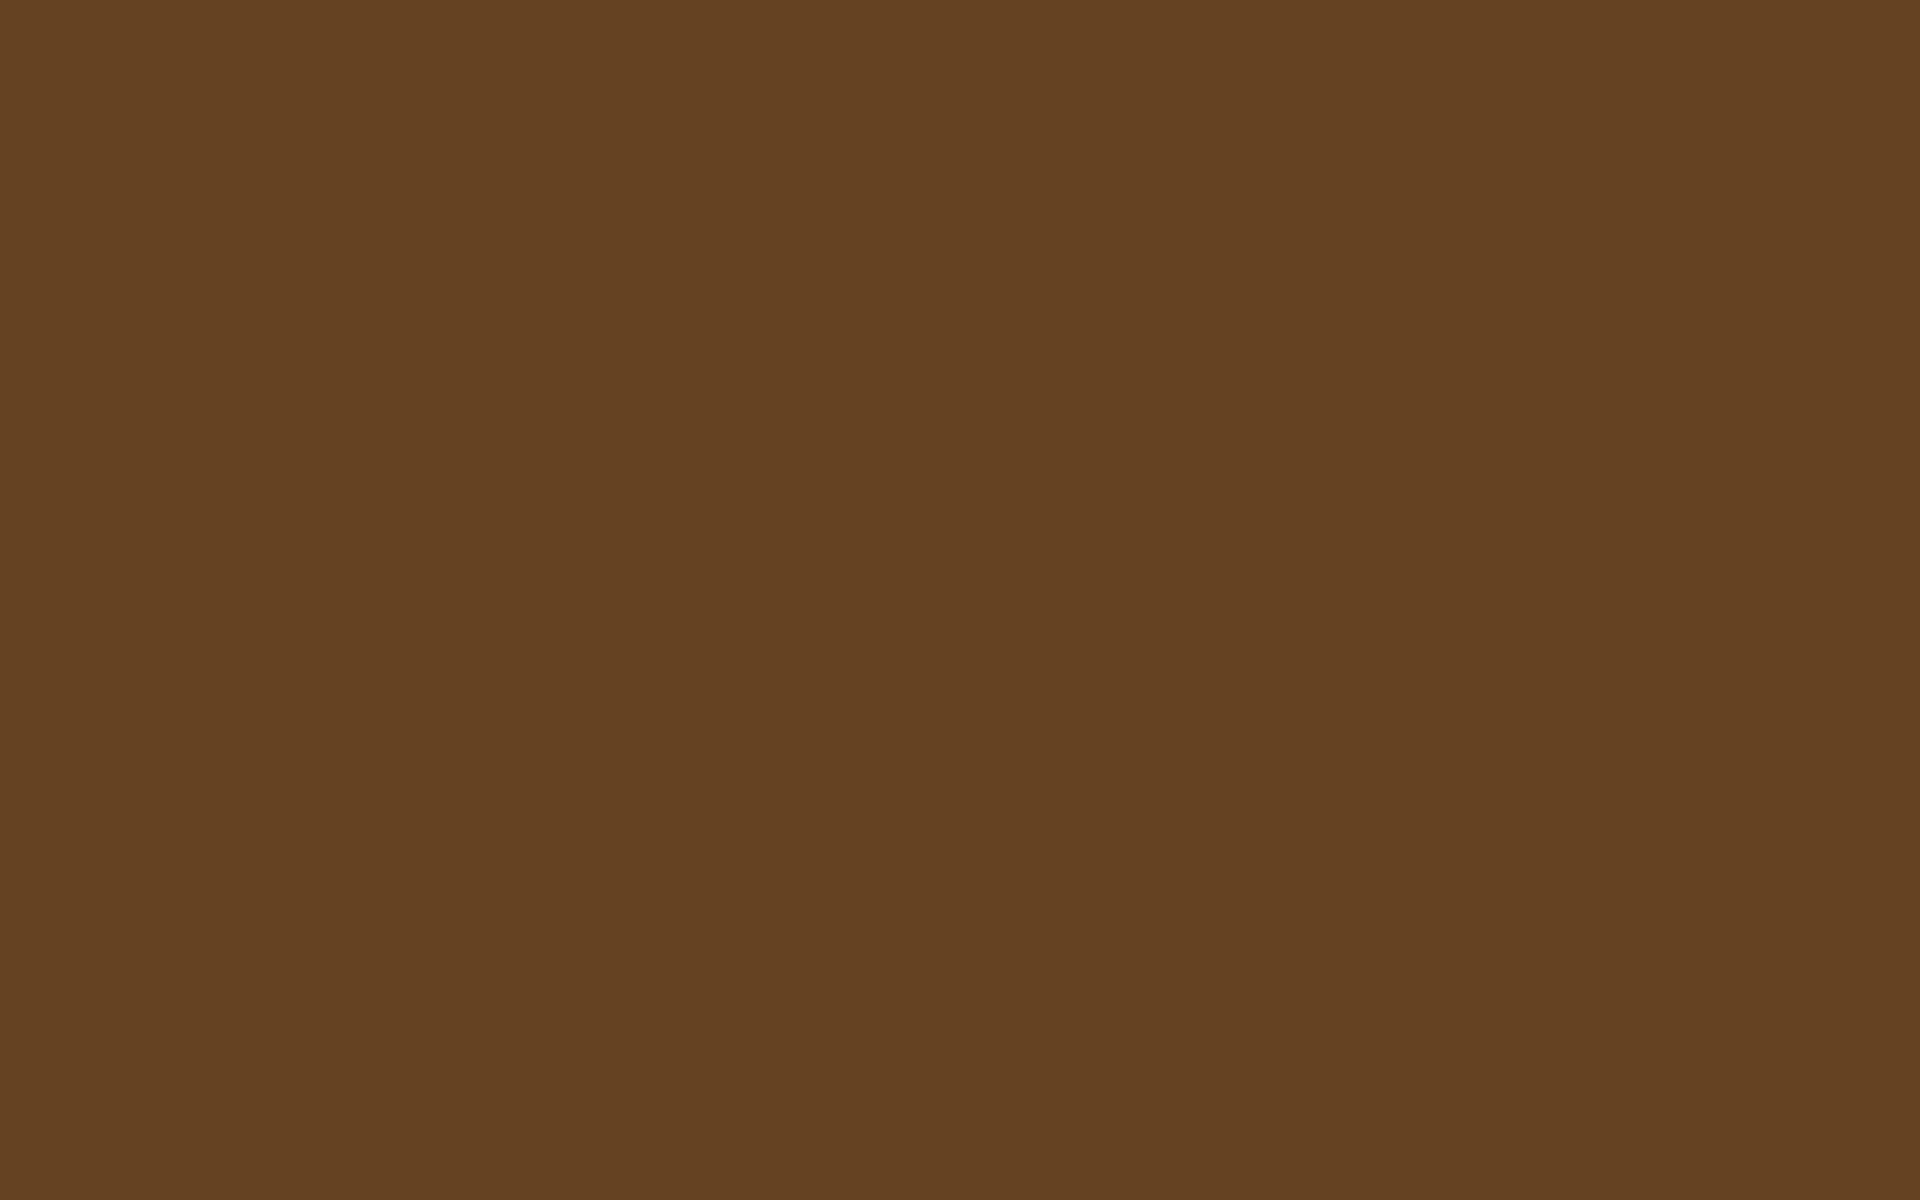 1920x1200 Otter Brown Solid Color Background